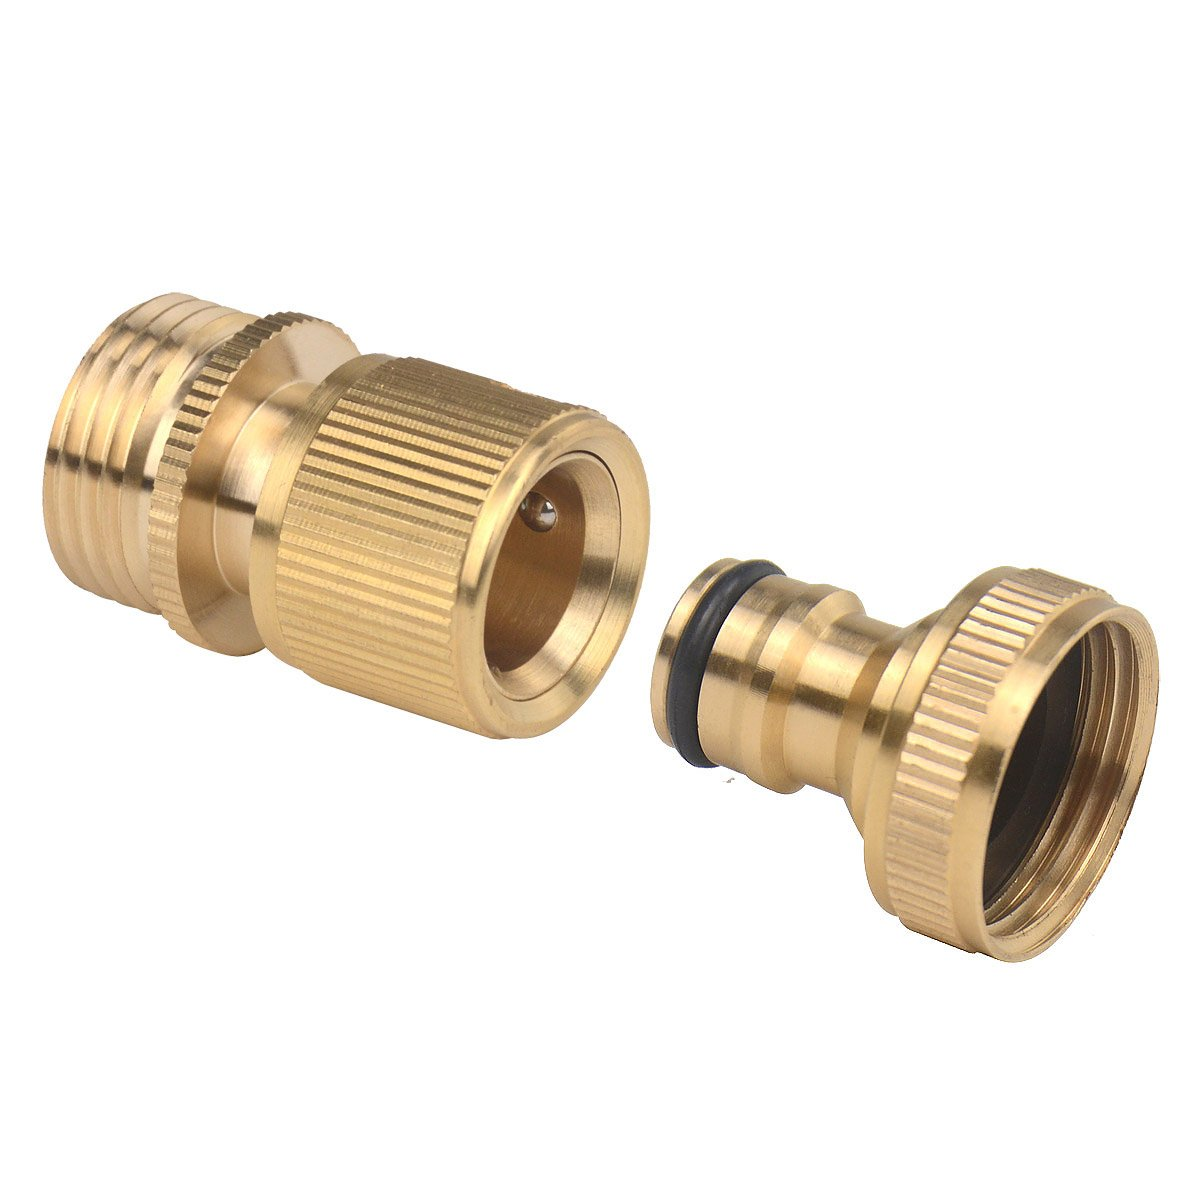 Set of Brass Male and Female 3/4 Inch Garden Hose End and Quick Connectors